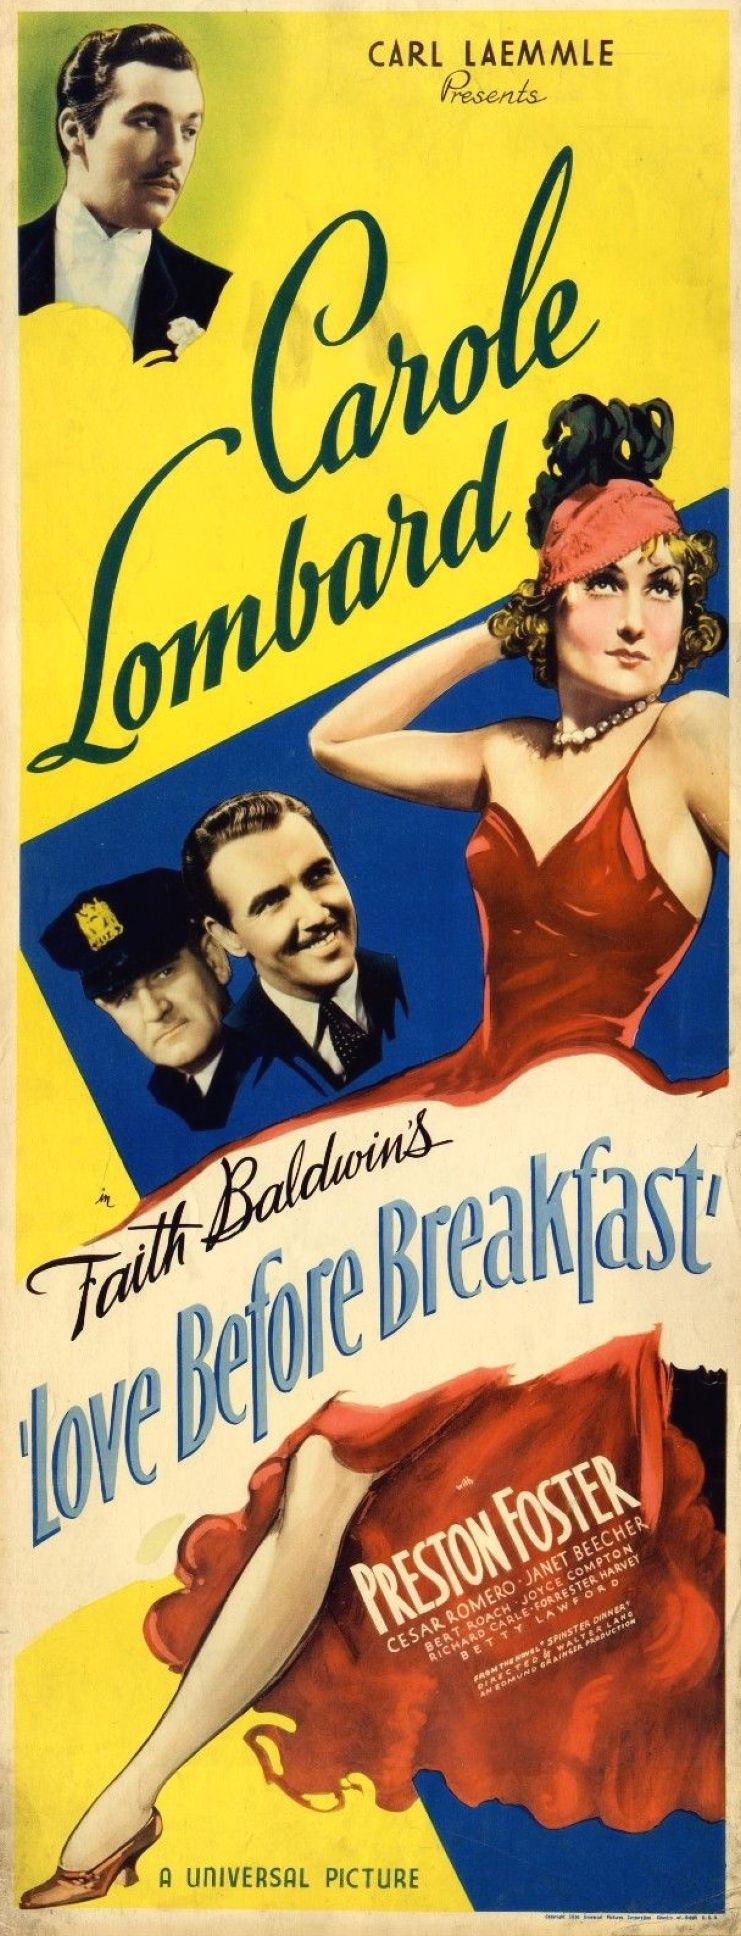 carole lombard love before breakfast poster 07b